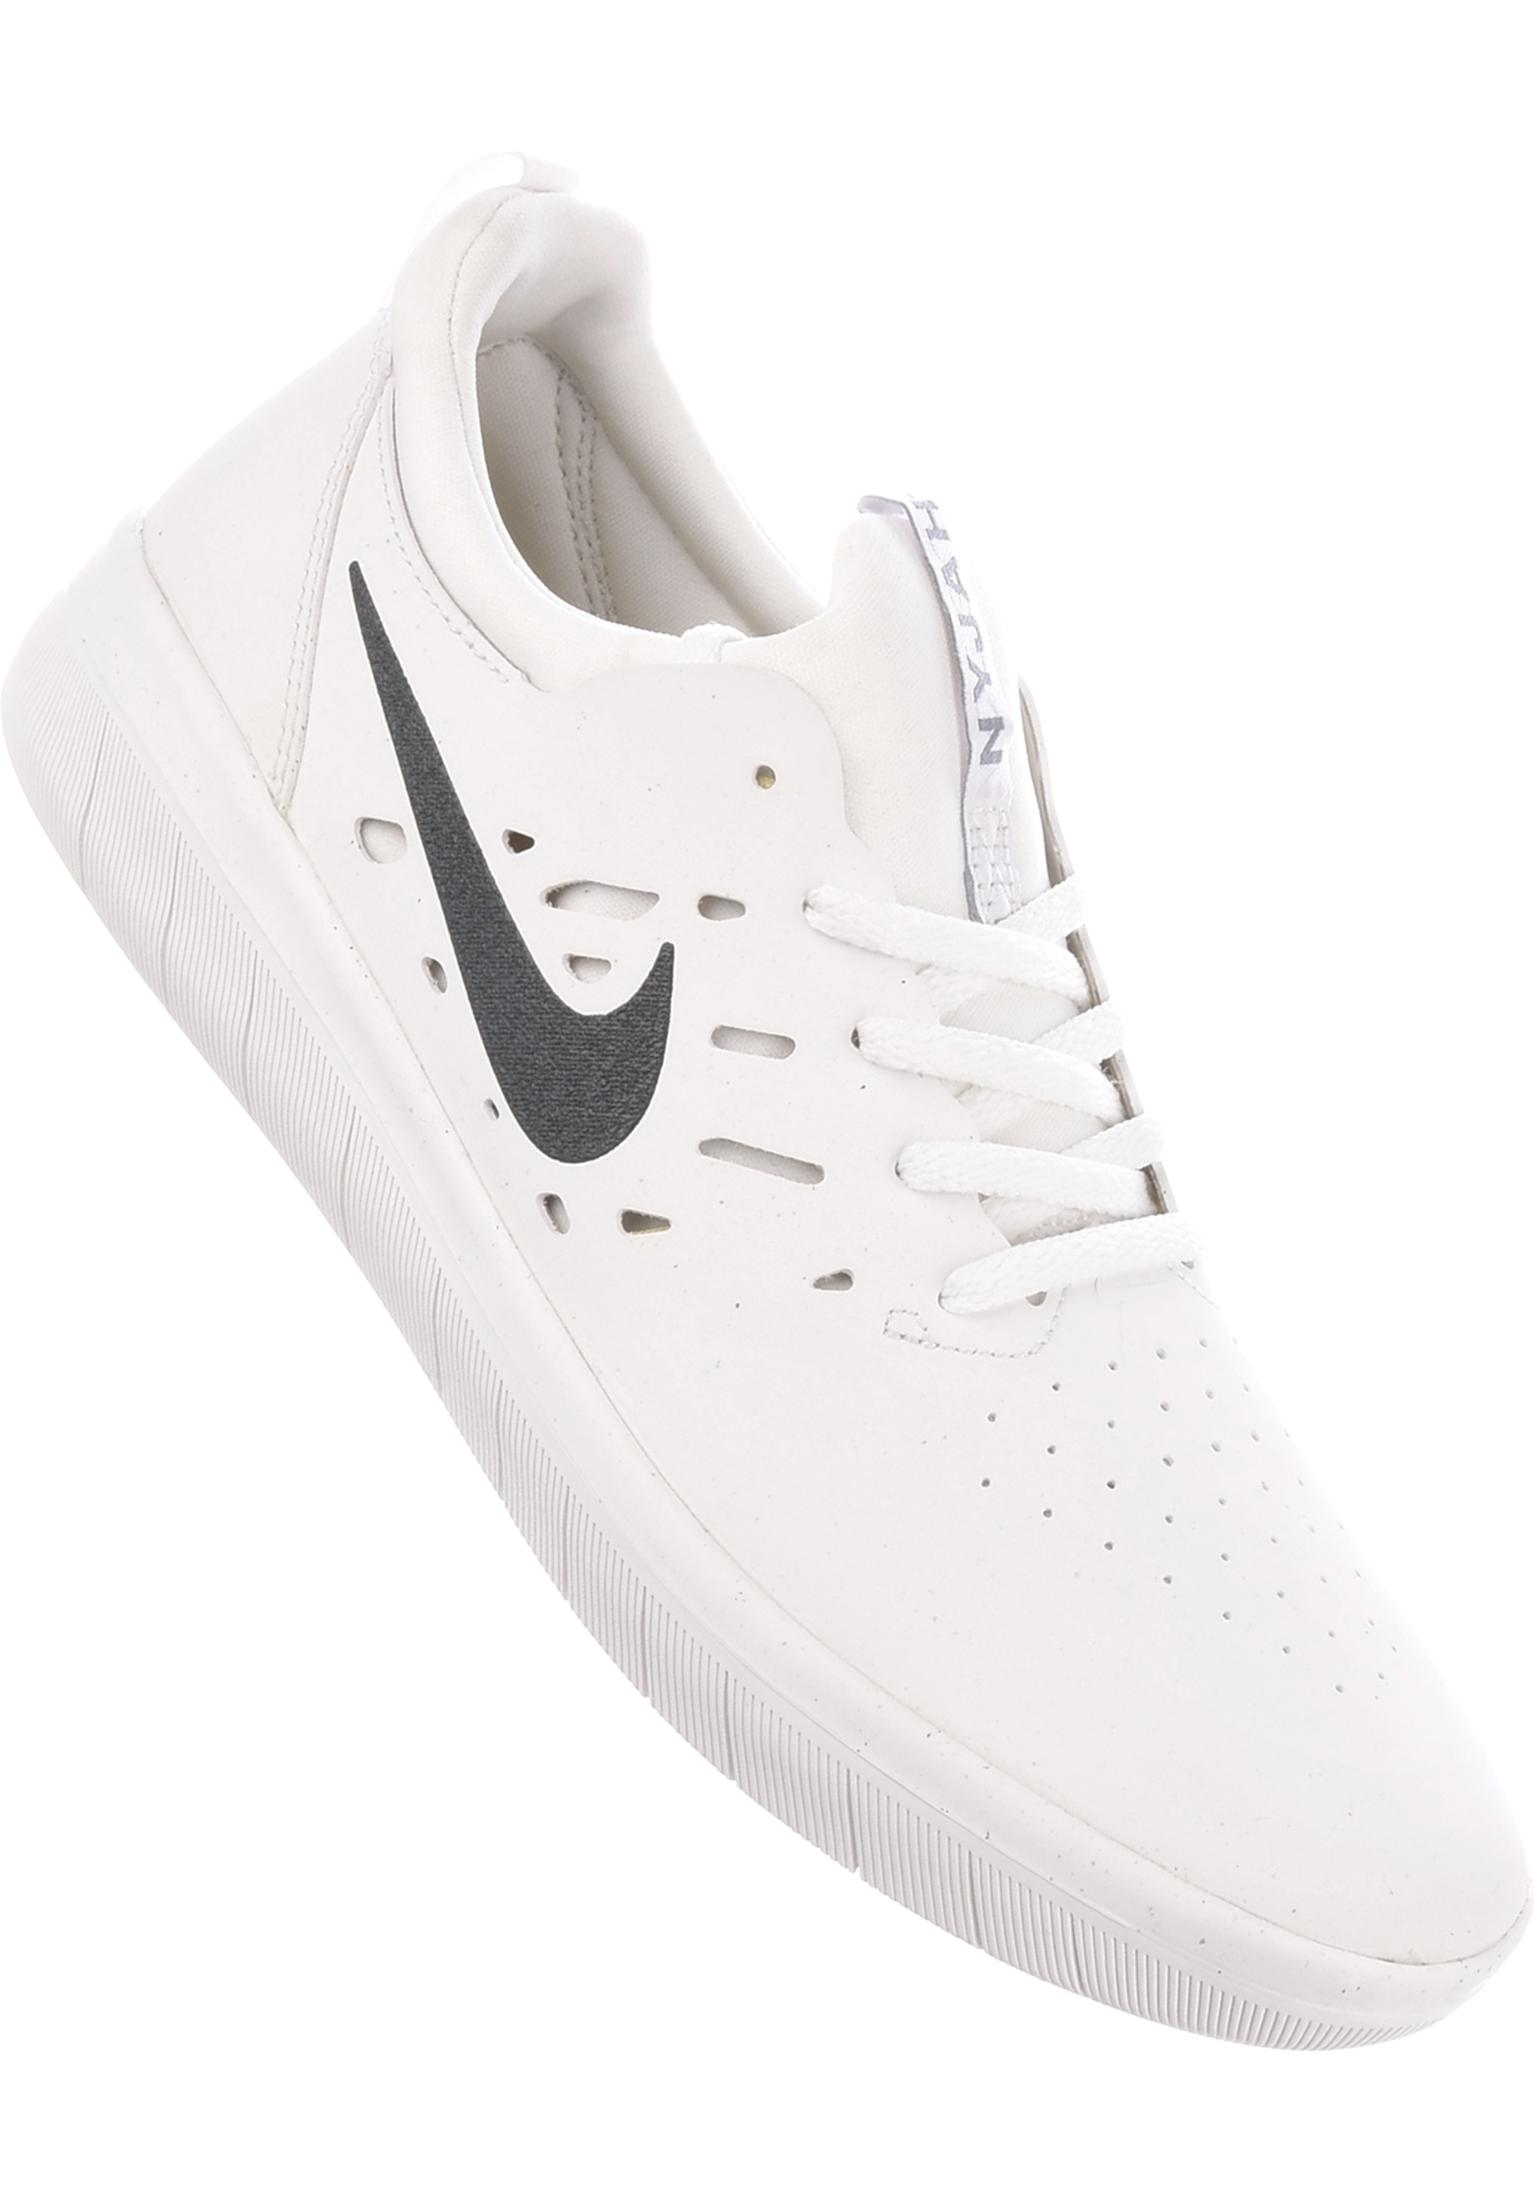 8210bcb04b5fb5 Nyjah Free Skateboarding Nike SB All Shoes in summitwhite-anthracite for  Men